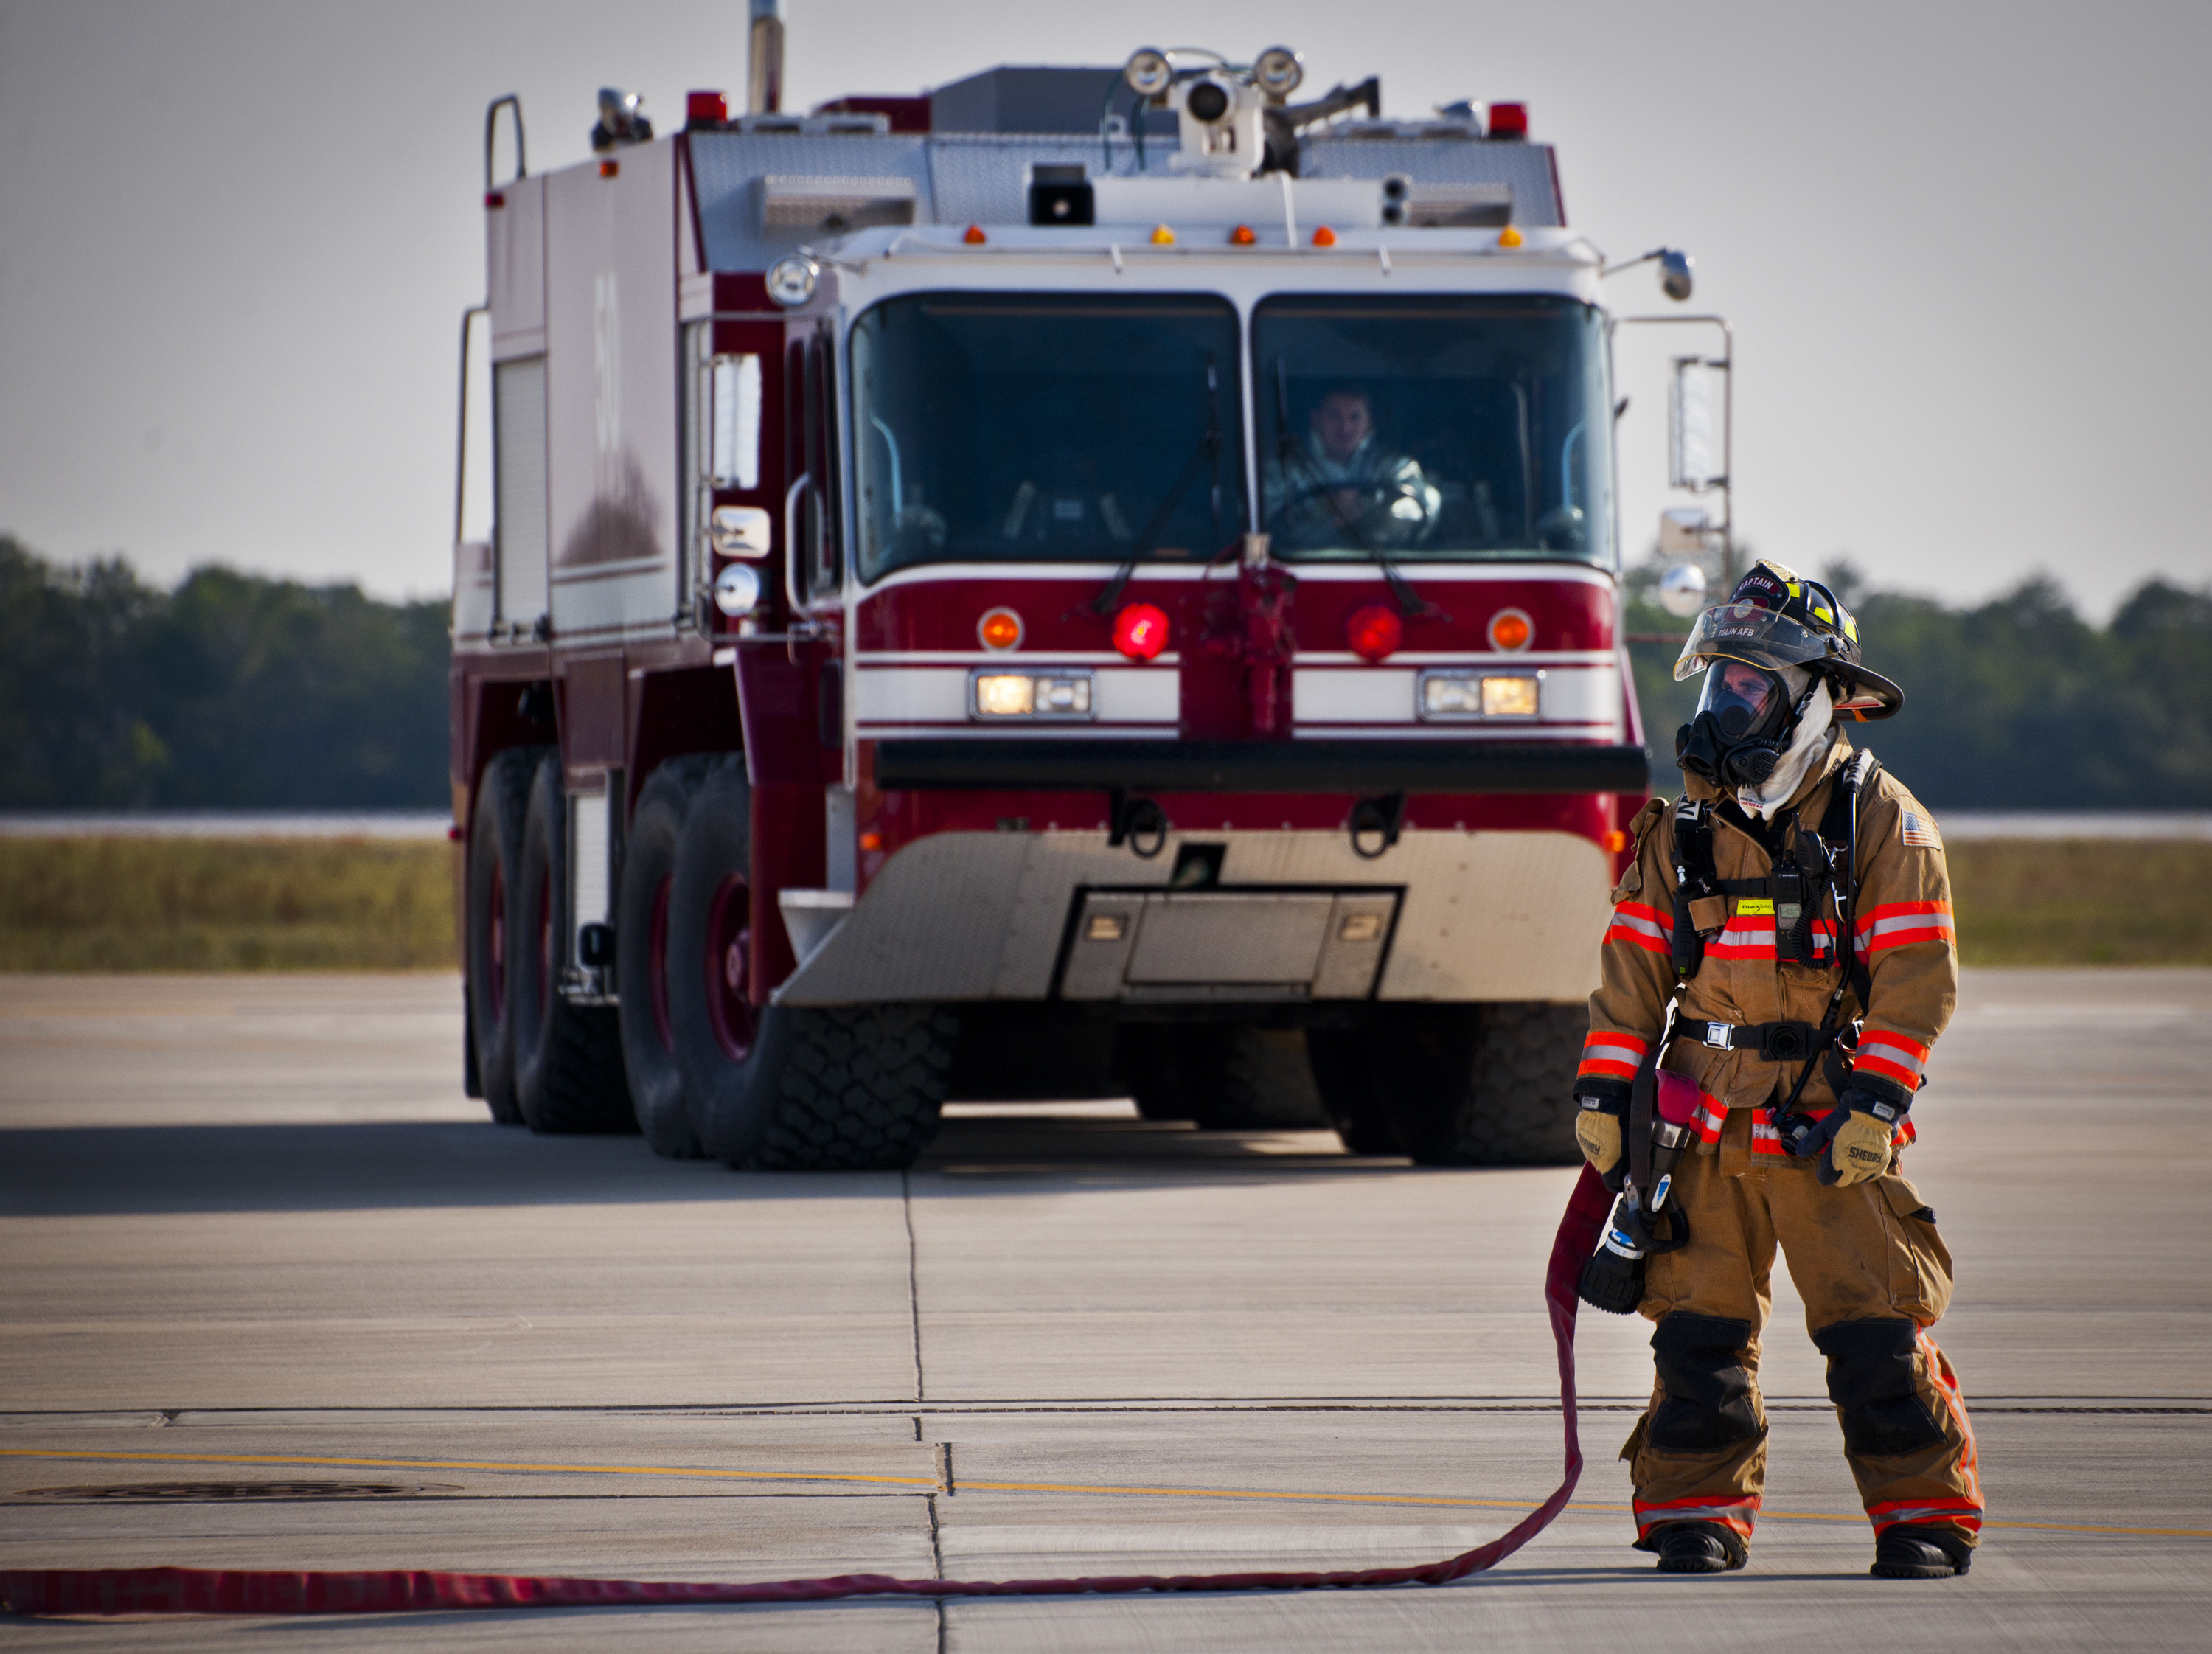 FileA firefighter with the US Air Forces 96th Test Wing – Firefighter Job Description